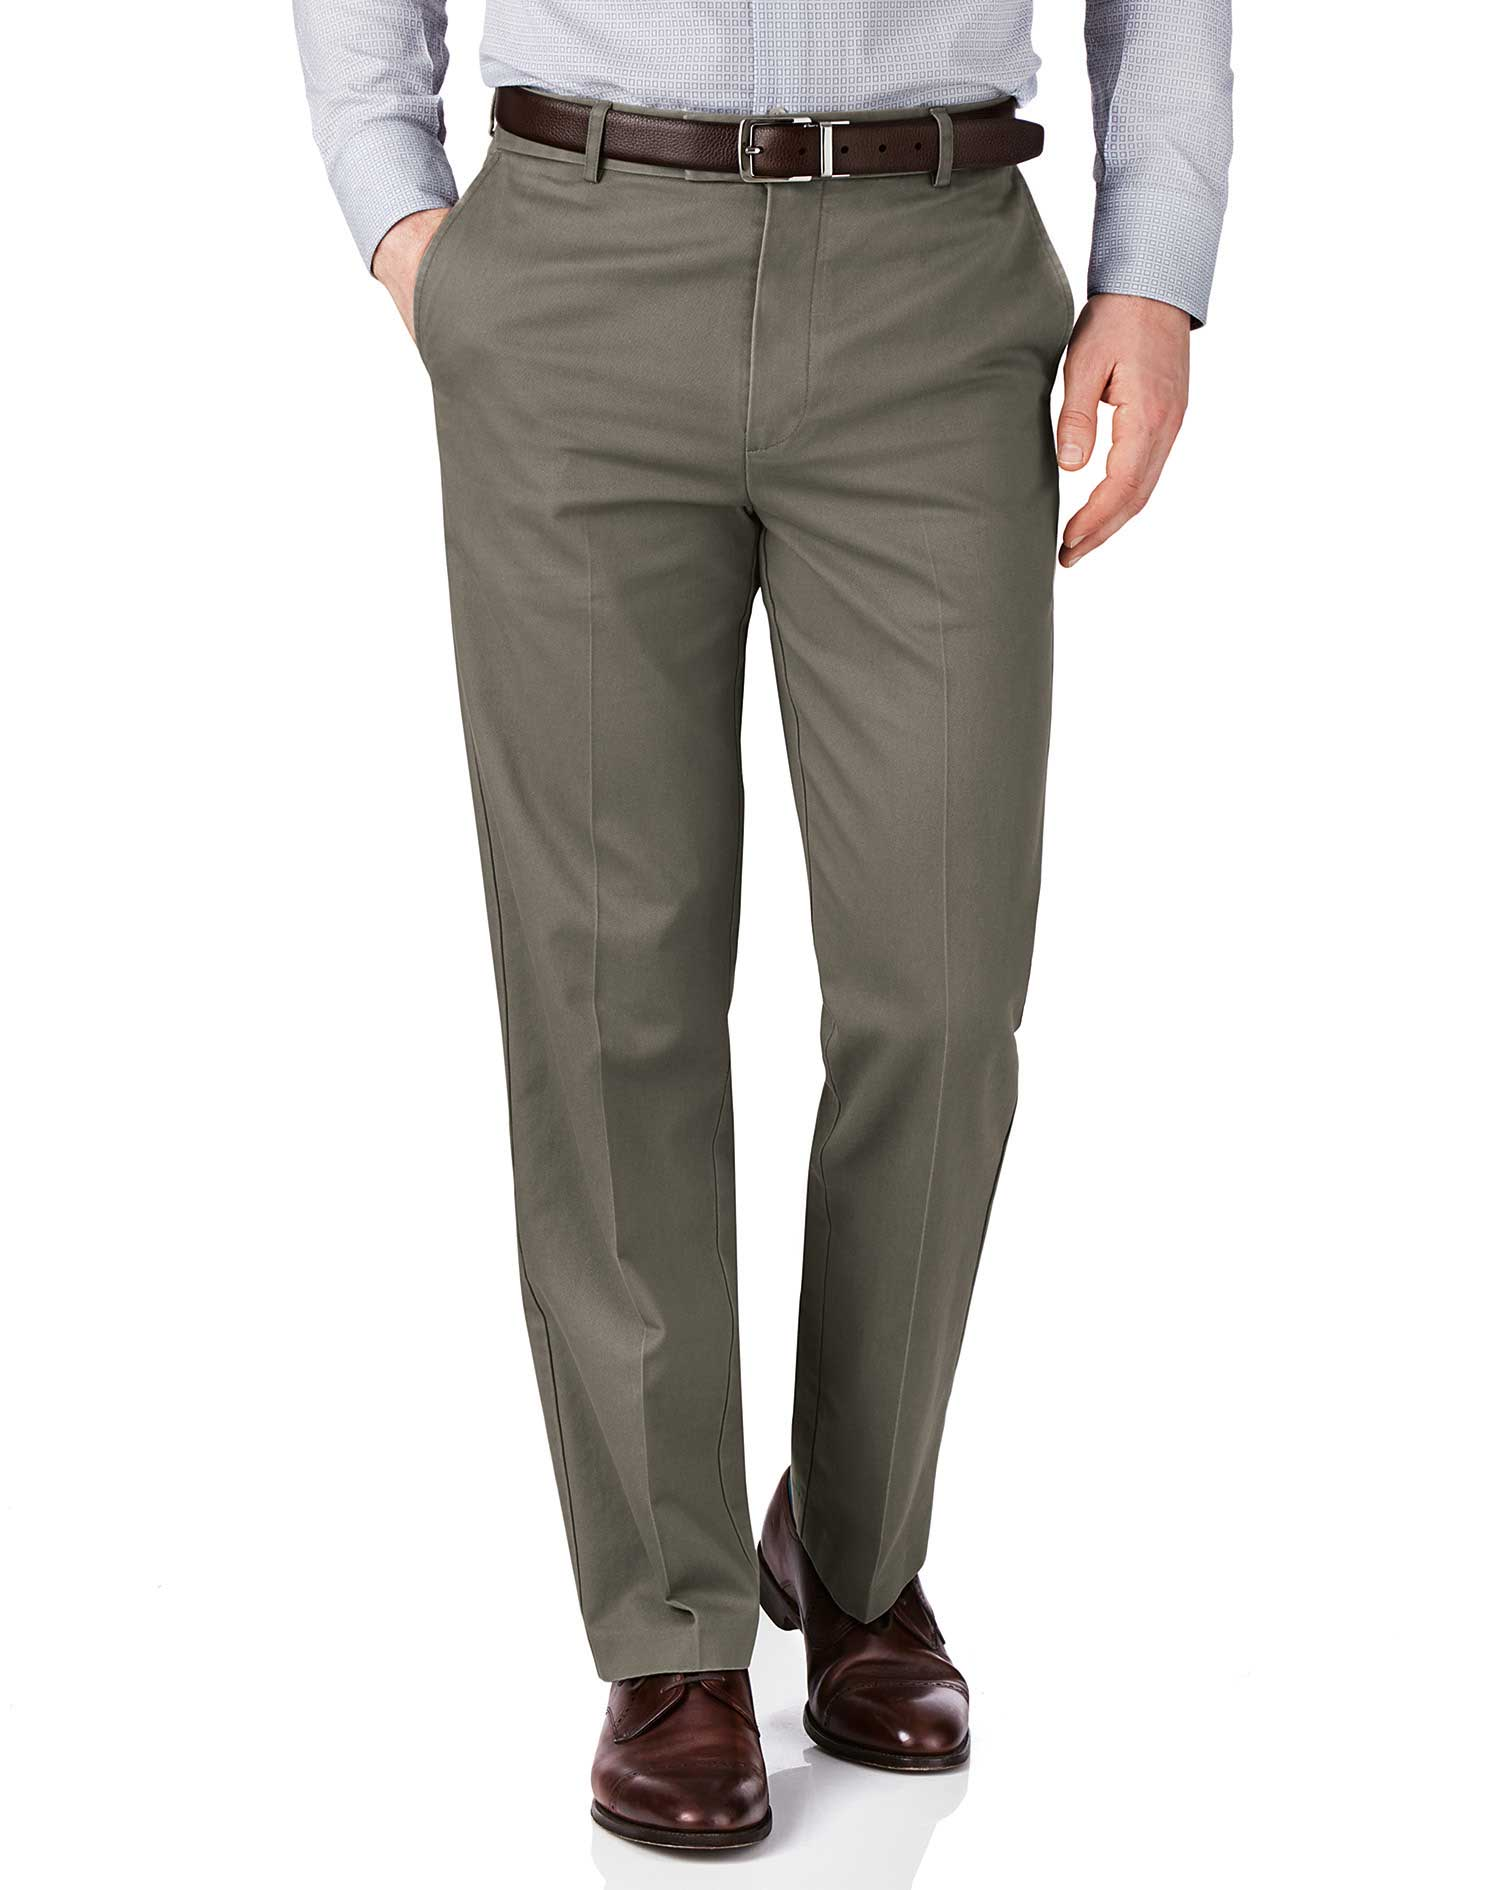 Olive Green Slim Fit Flat Front Non-Iron Cotton Chino Trousers Size W42 L32 by Charles Tyrwhitt